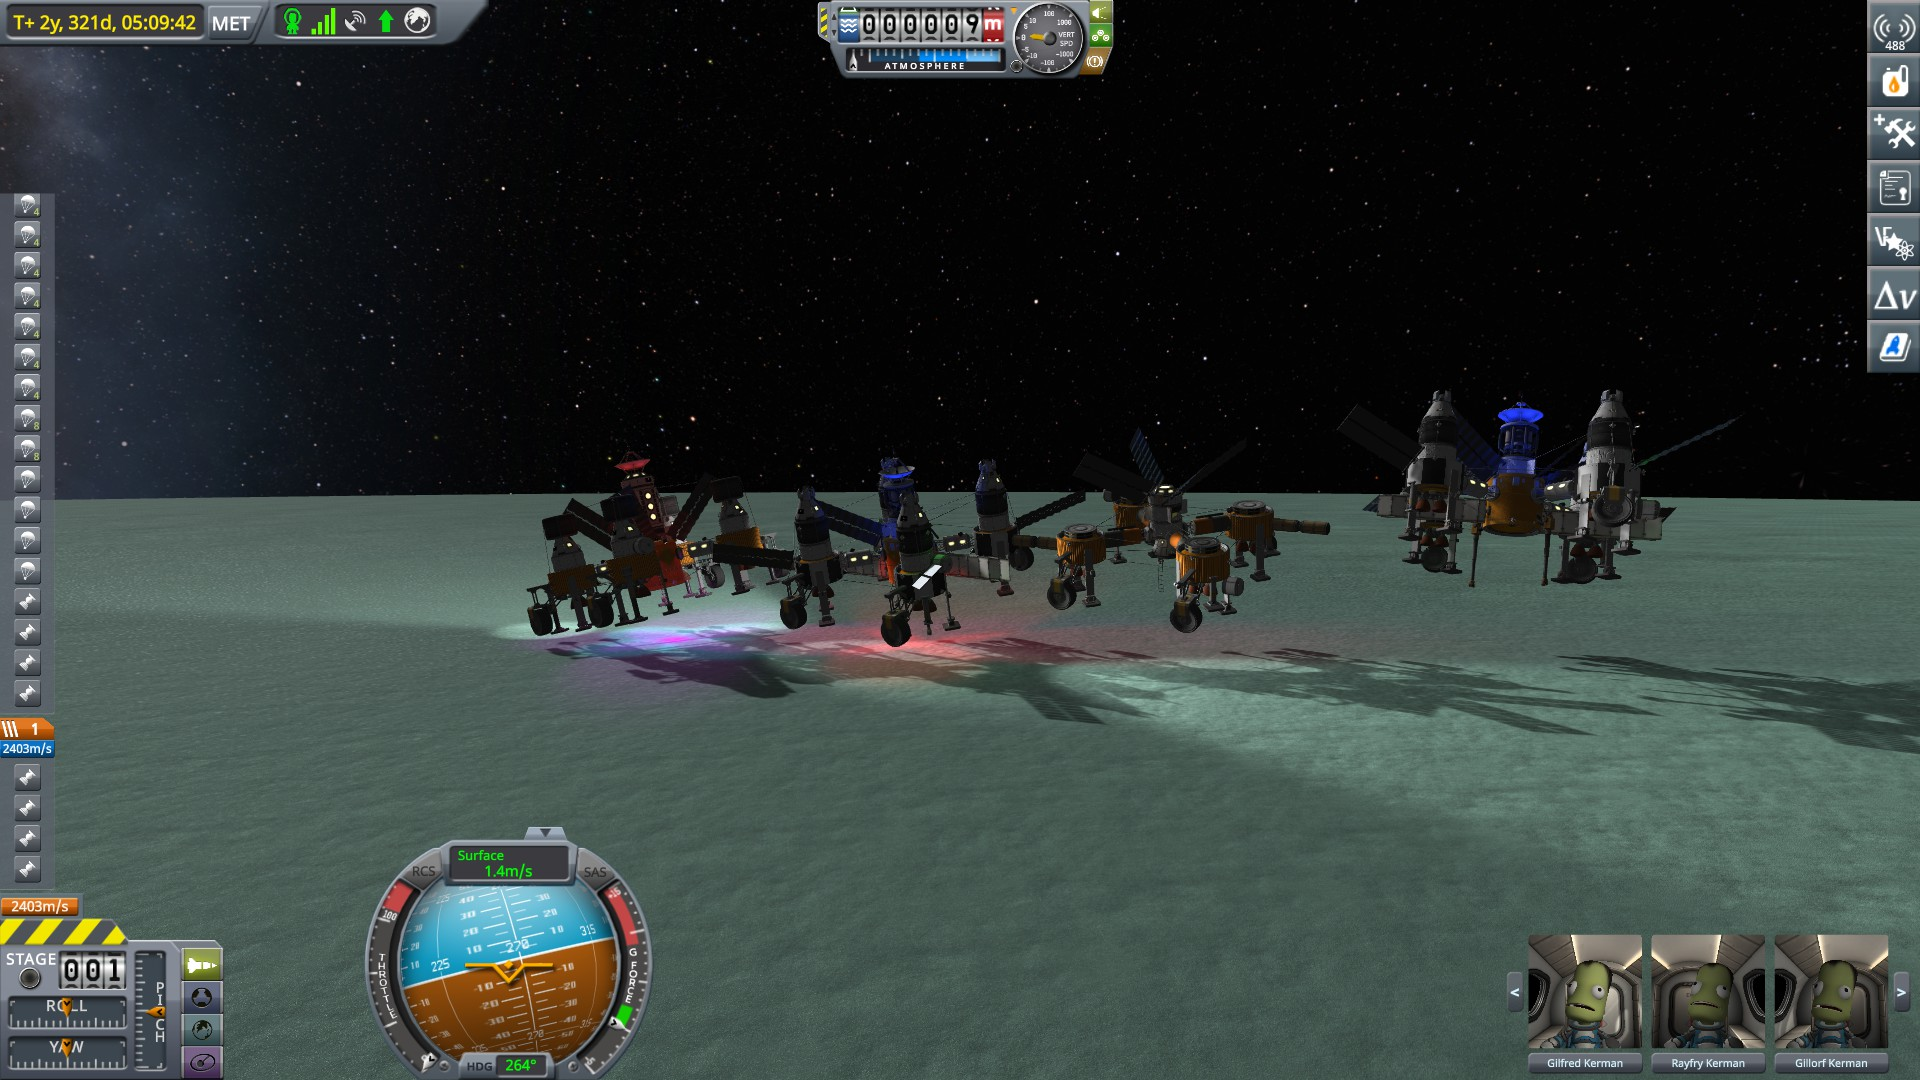 Kerbal Space Program - New Ground Clamp Uses Guide - Test - 90932BC